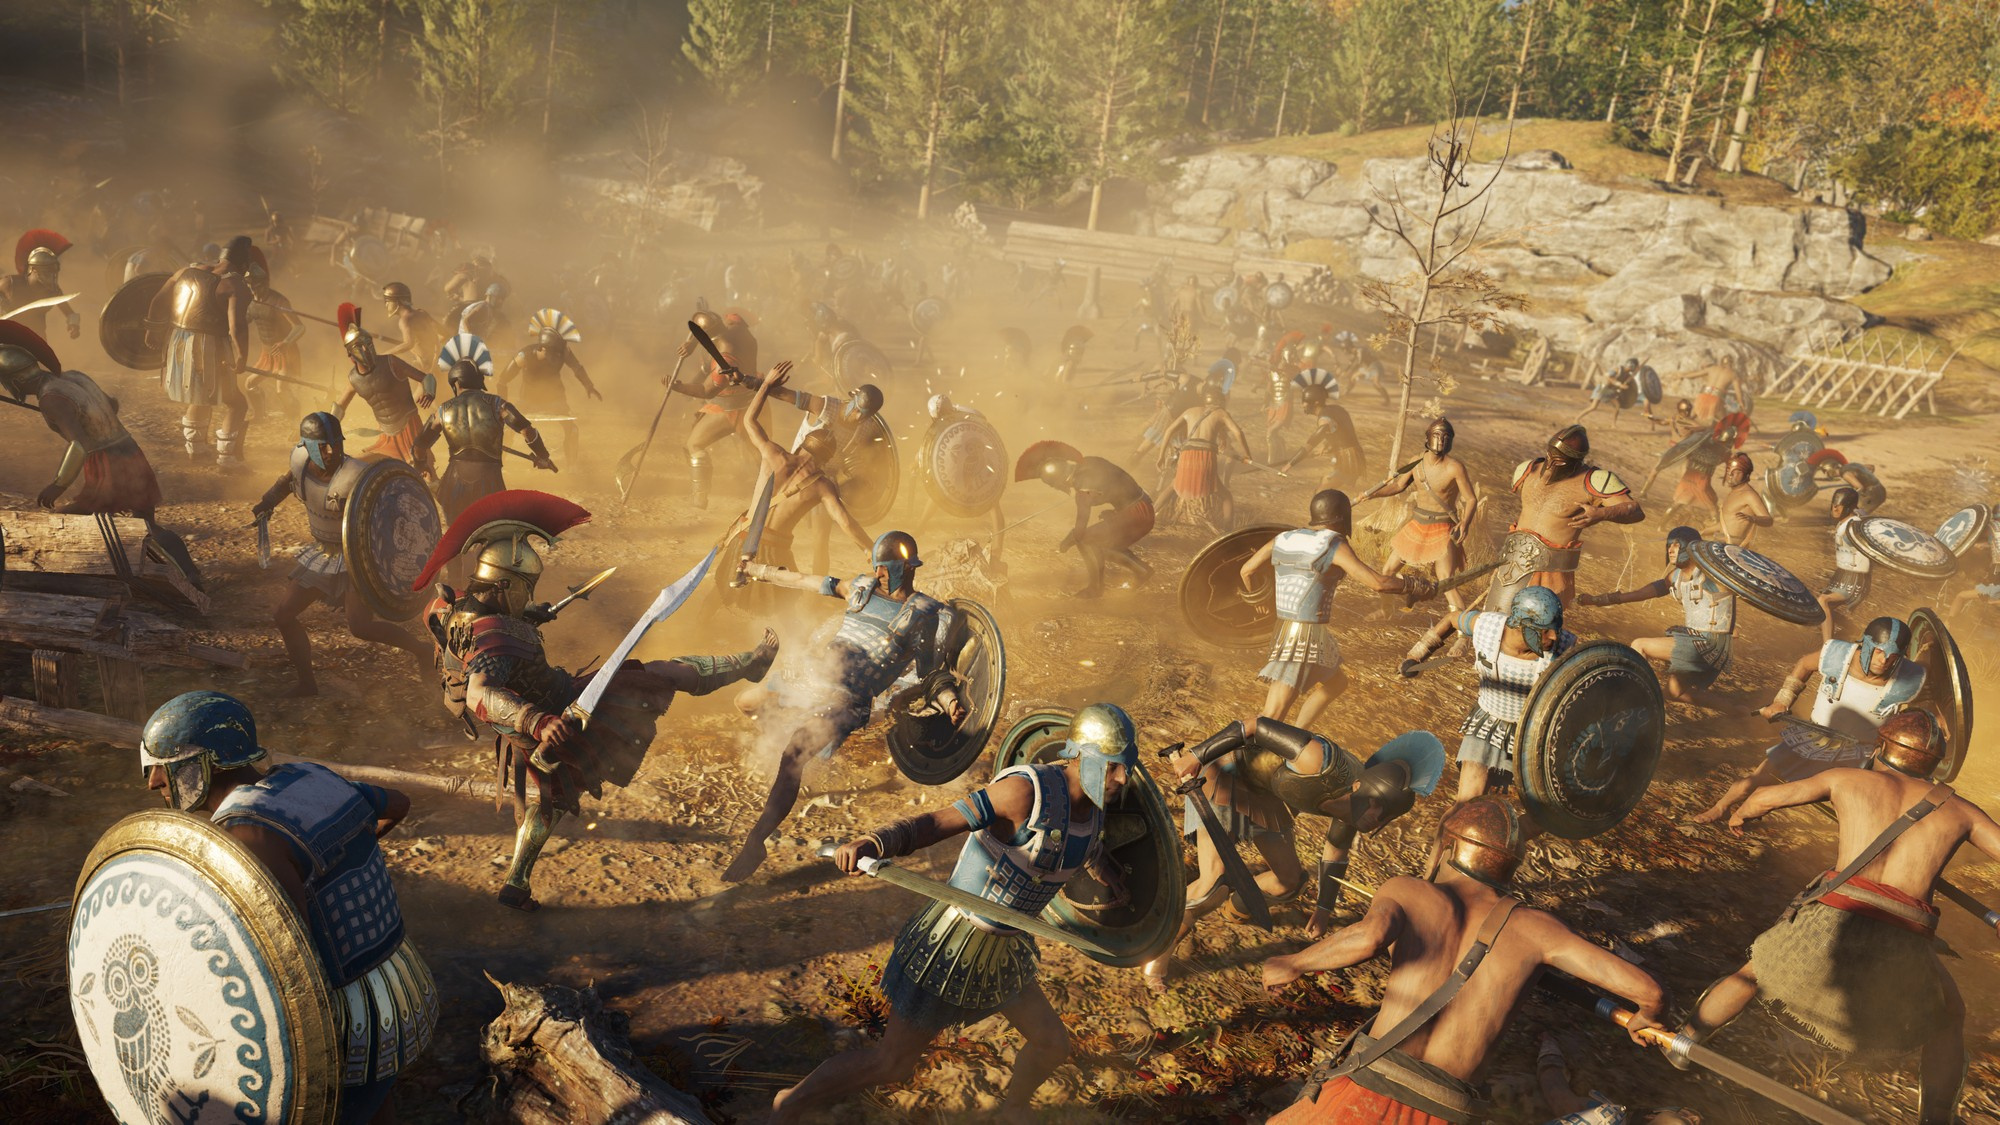 Assassins Creed Odyssey Character Builds Combining Abilities To